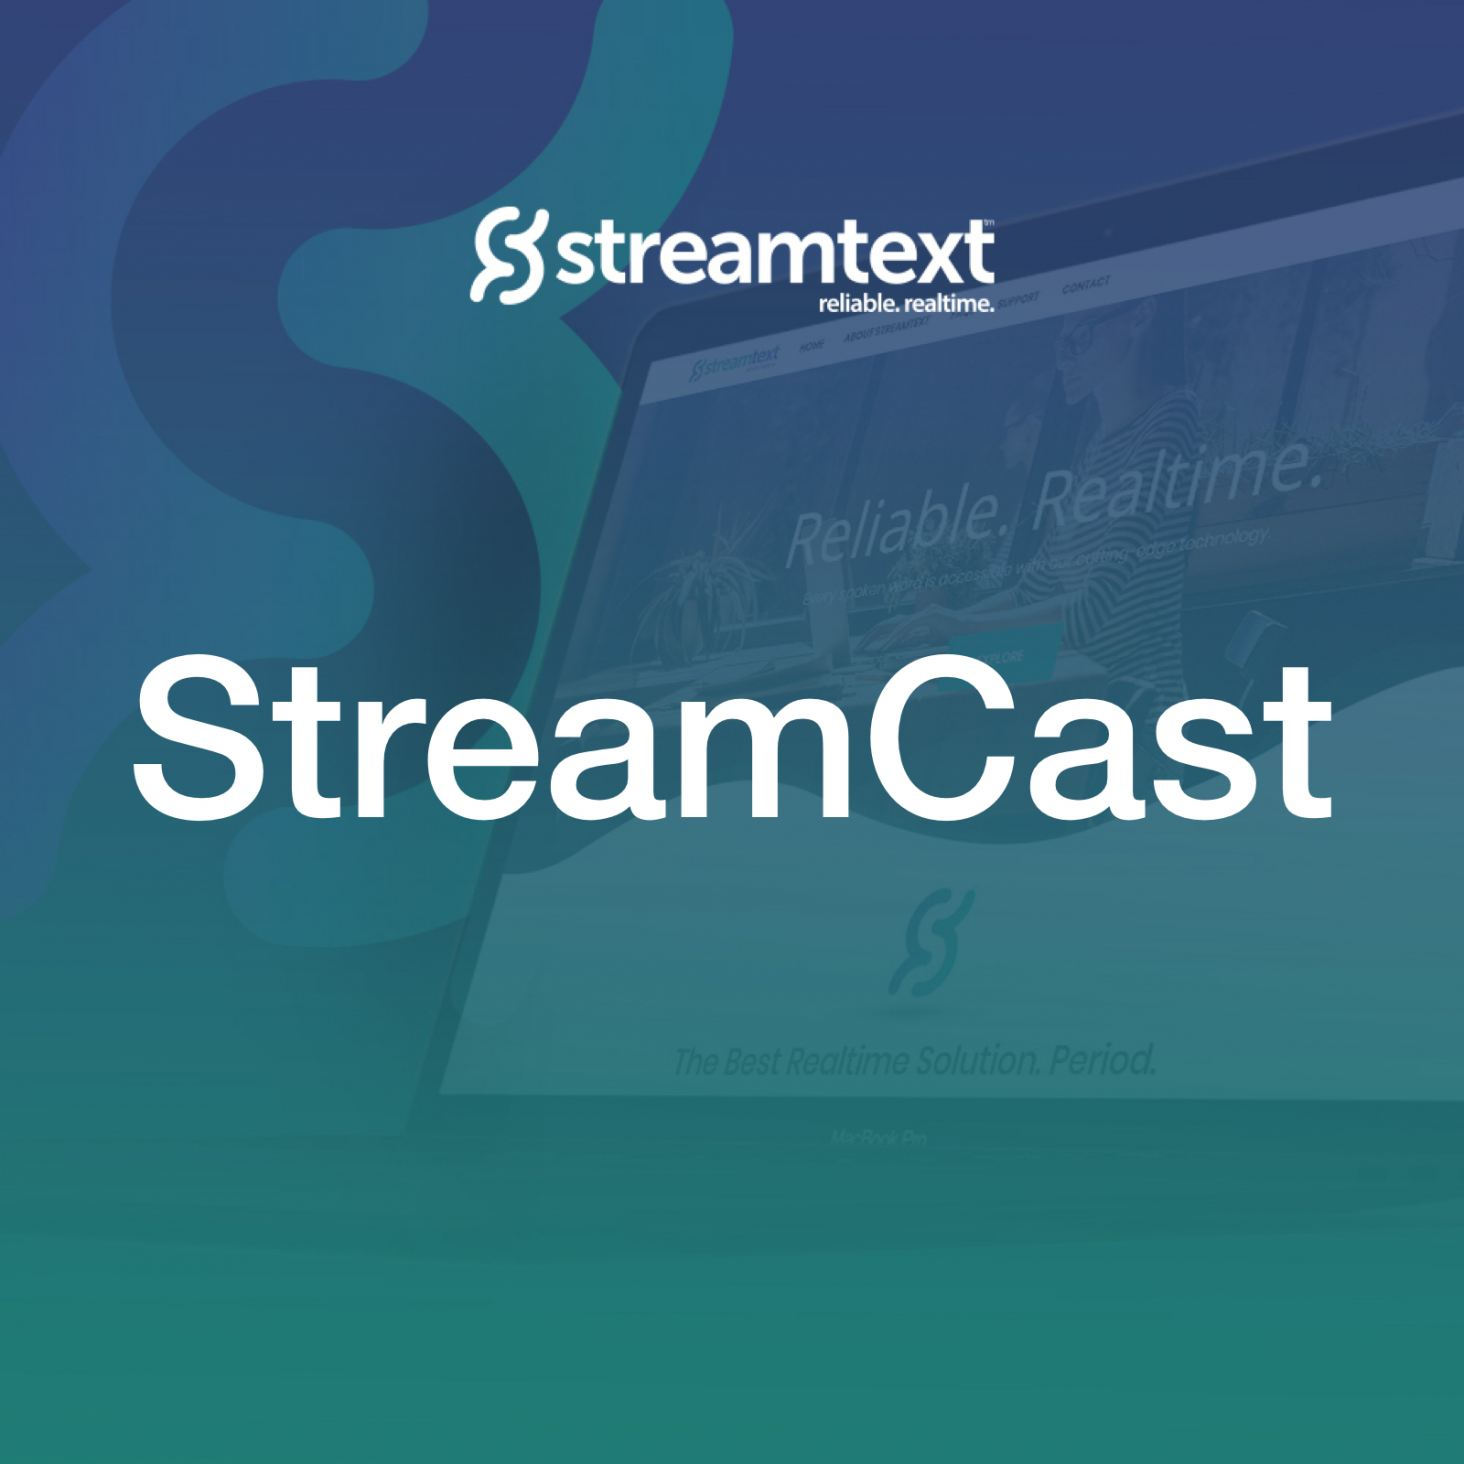 StreamCast App - Powerful Tool For Captioners